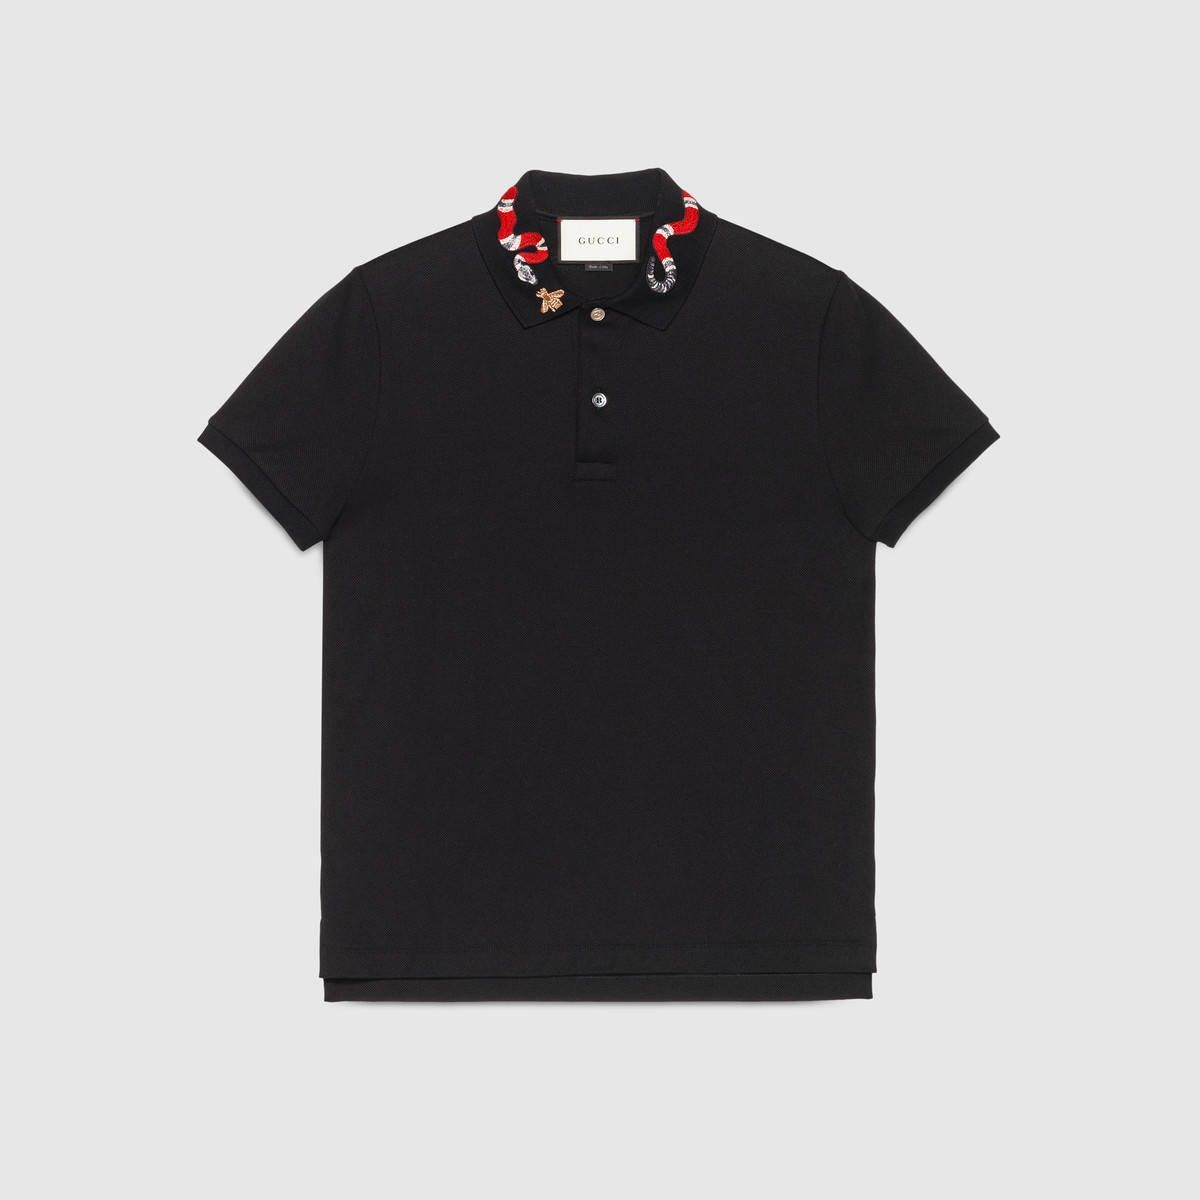 28b6b536 GUCCI Cotton polo with Kingsnake embroidery - black cotton. #gucci #cloth #